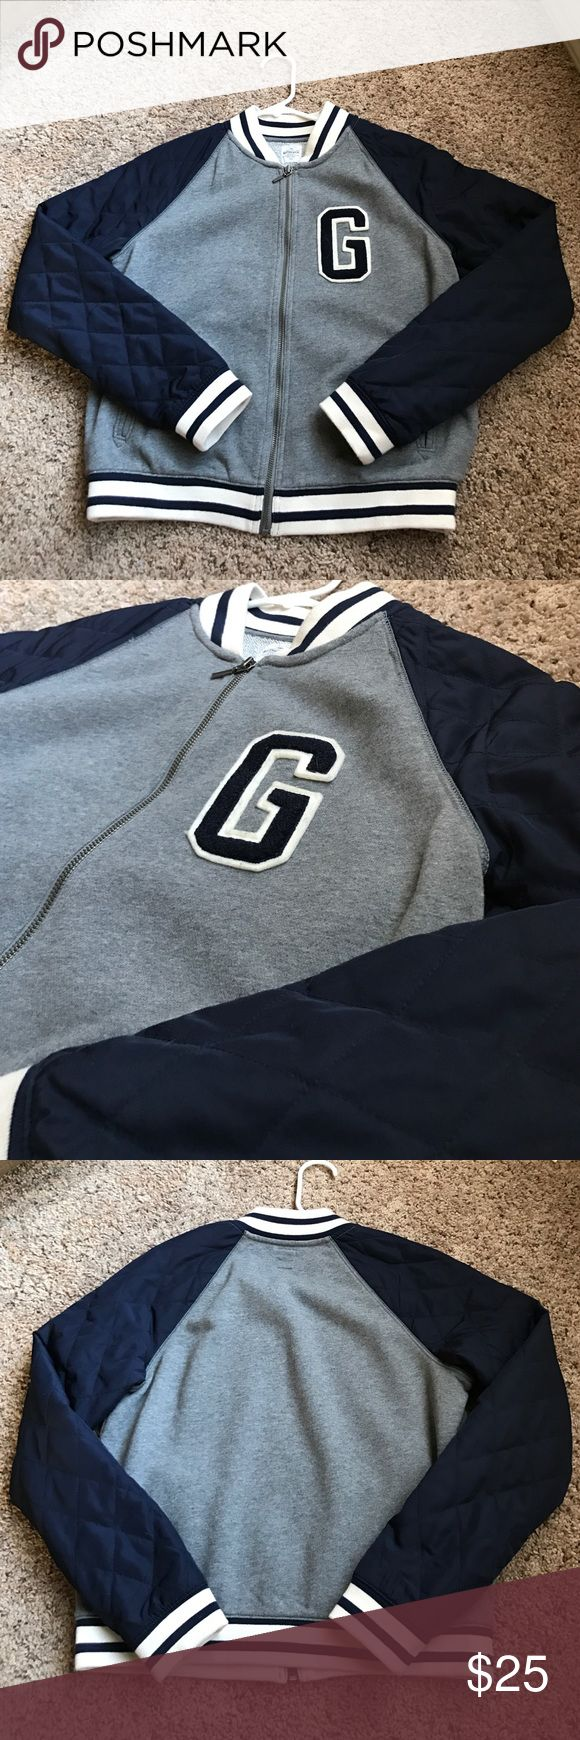 Letterman like GAP jacket Letterman like GAP jacket. Very warm and comfortable. Navy blue and almost brand new! GAP Jackets & Coats